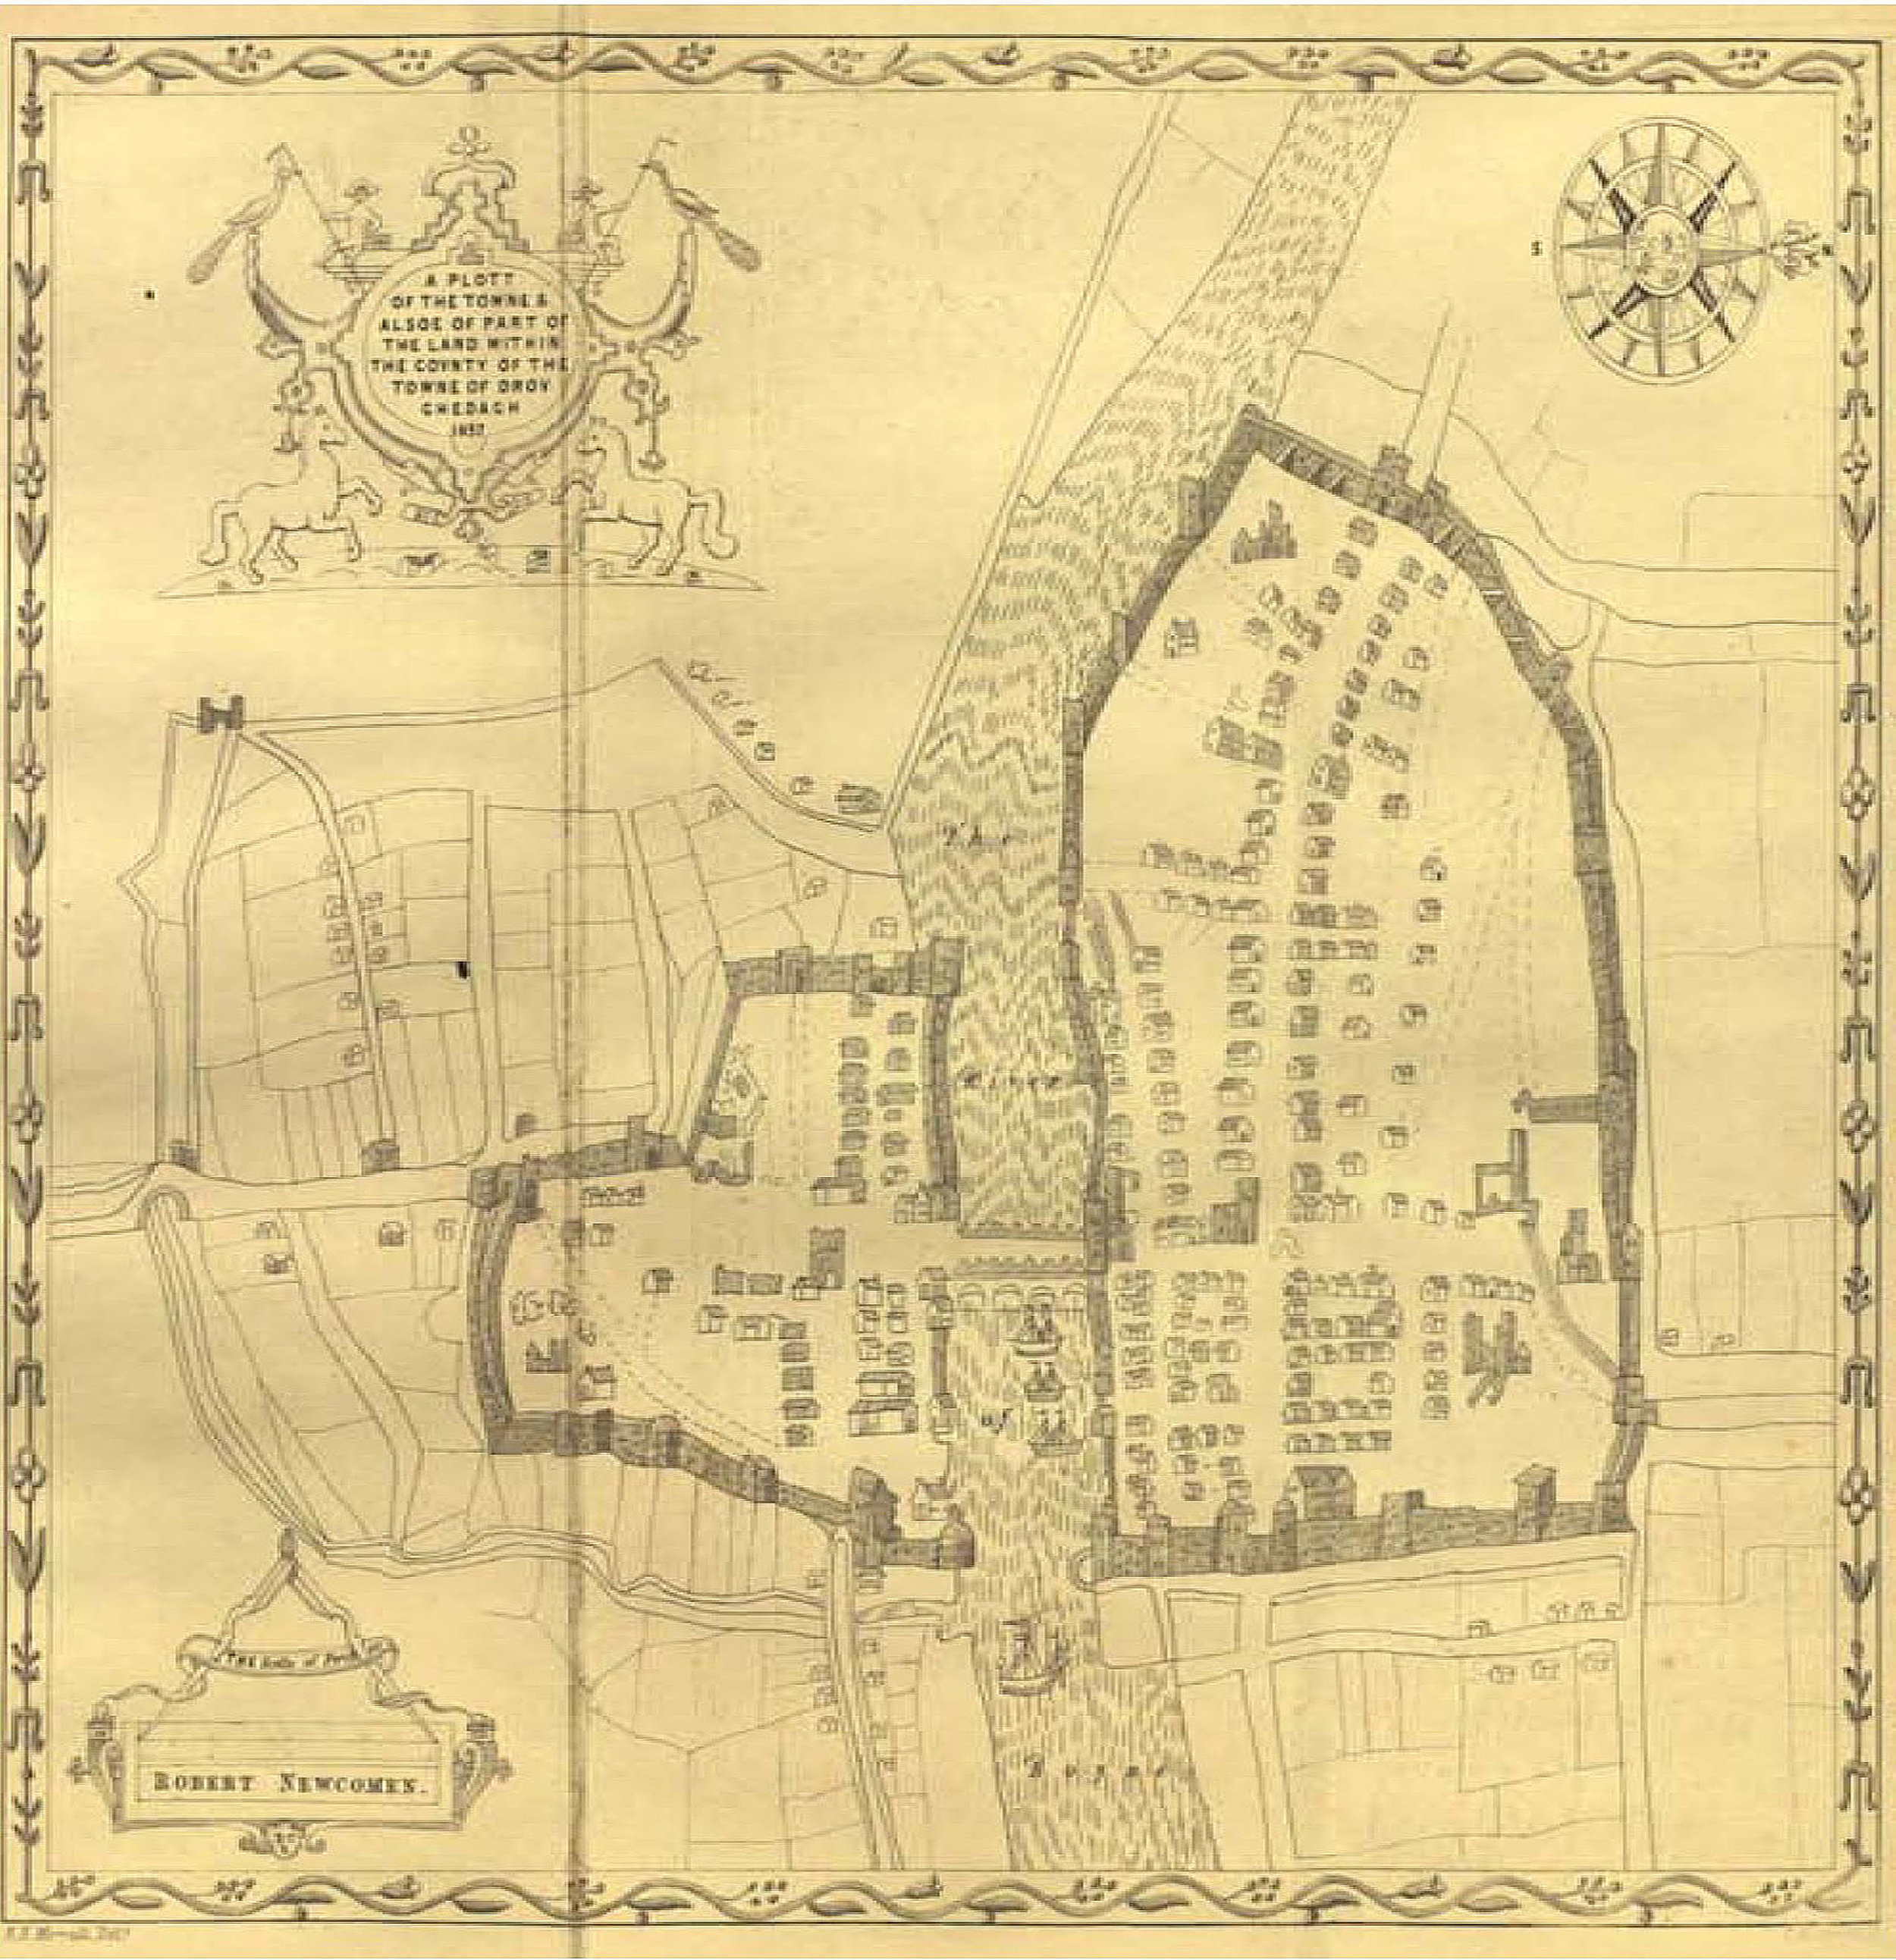 Map dated 1657 shows ships on the river, indicating Drogheda's long importance as a port town.